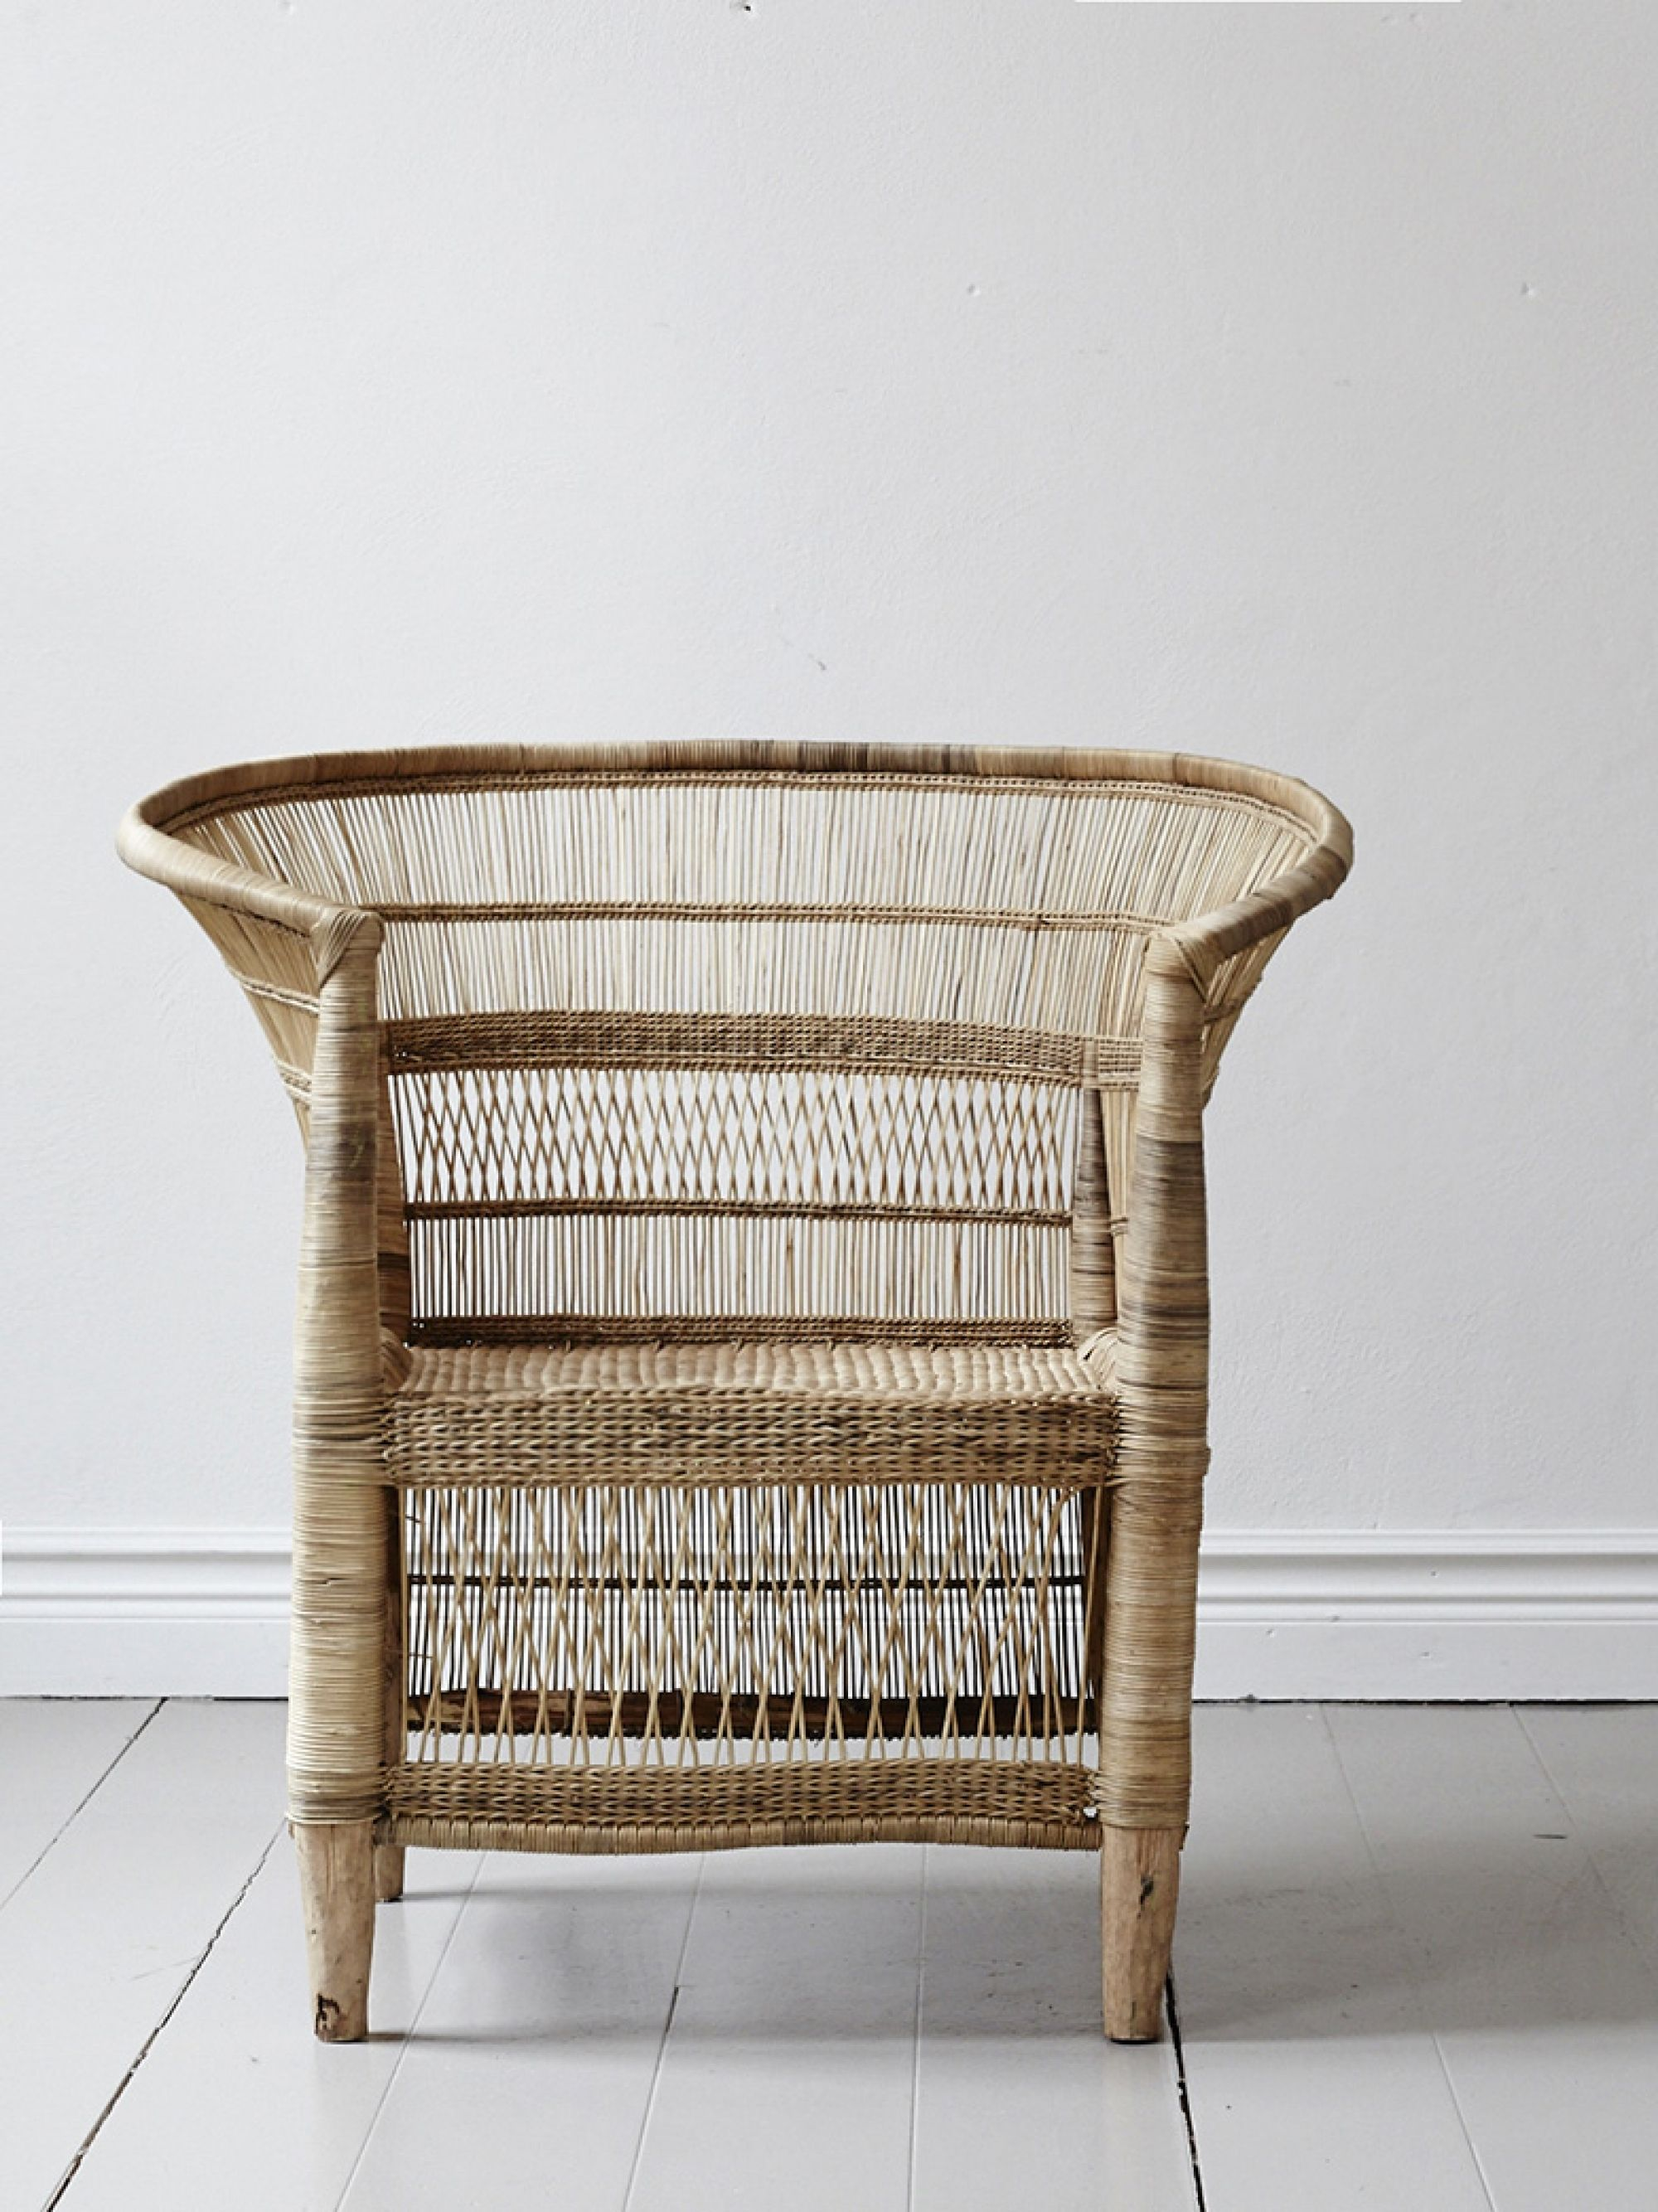 Malawi Chair F u r n i t u r e Pinterest Rattan Armchairs and